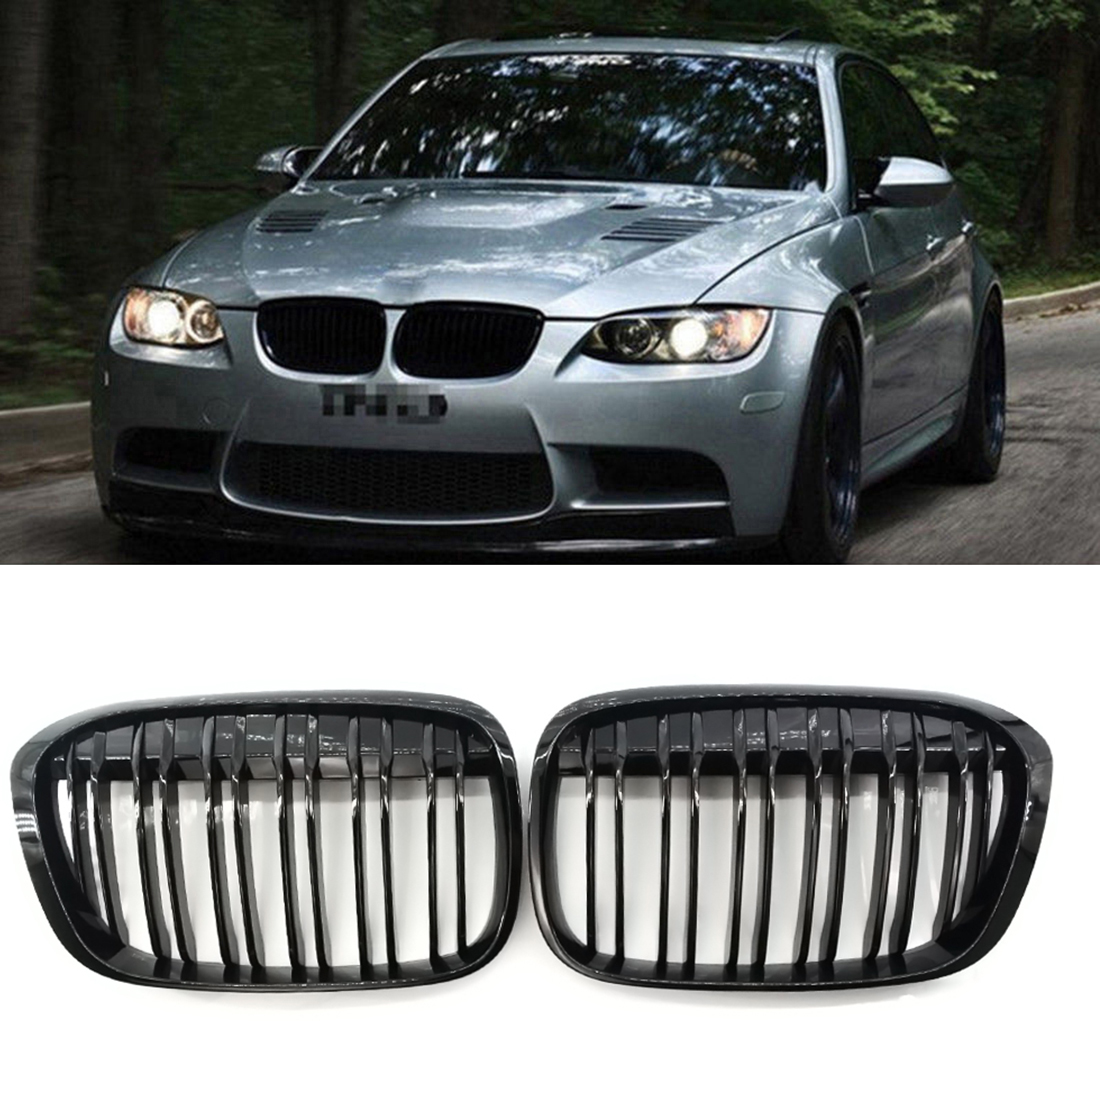 1 Pair /// M Color Matte Black Front Bumper Grille For BMW E83 X3 LCI 07-10 Facelift GZ.A E83 XK L / LM/YM #D2#D2 1 pair new black flame l